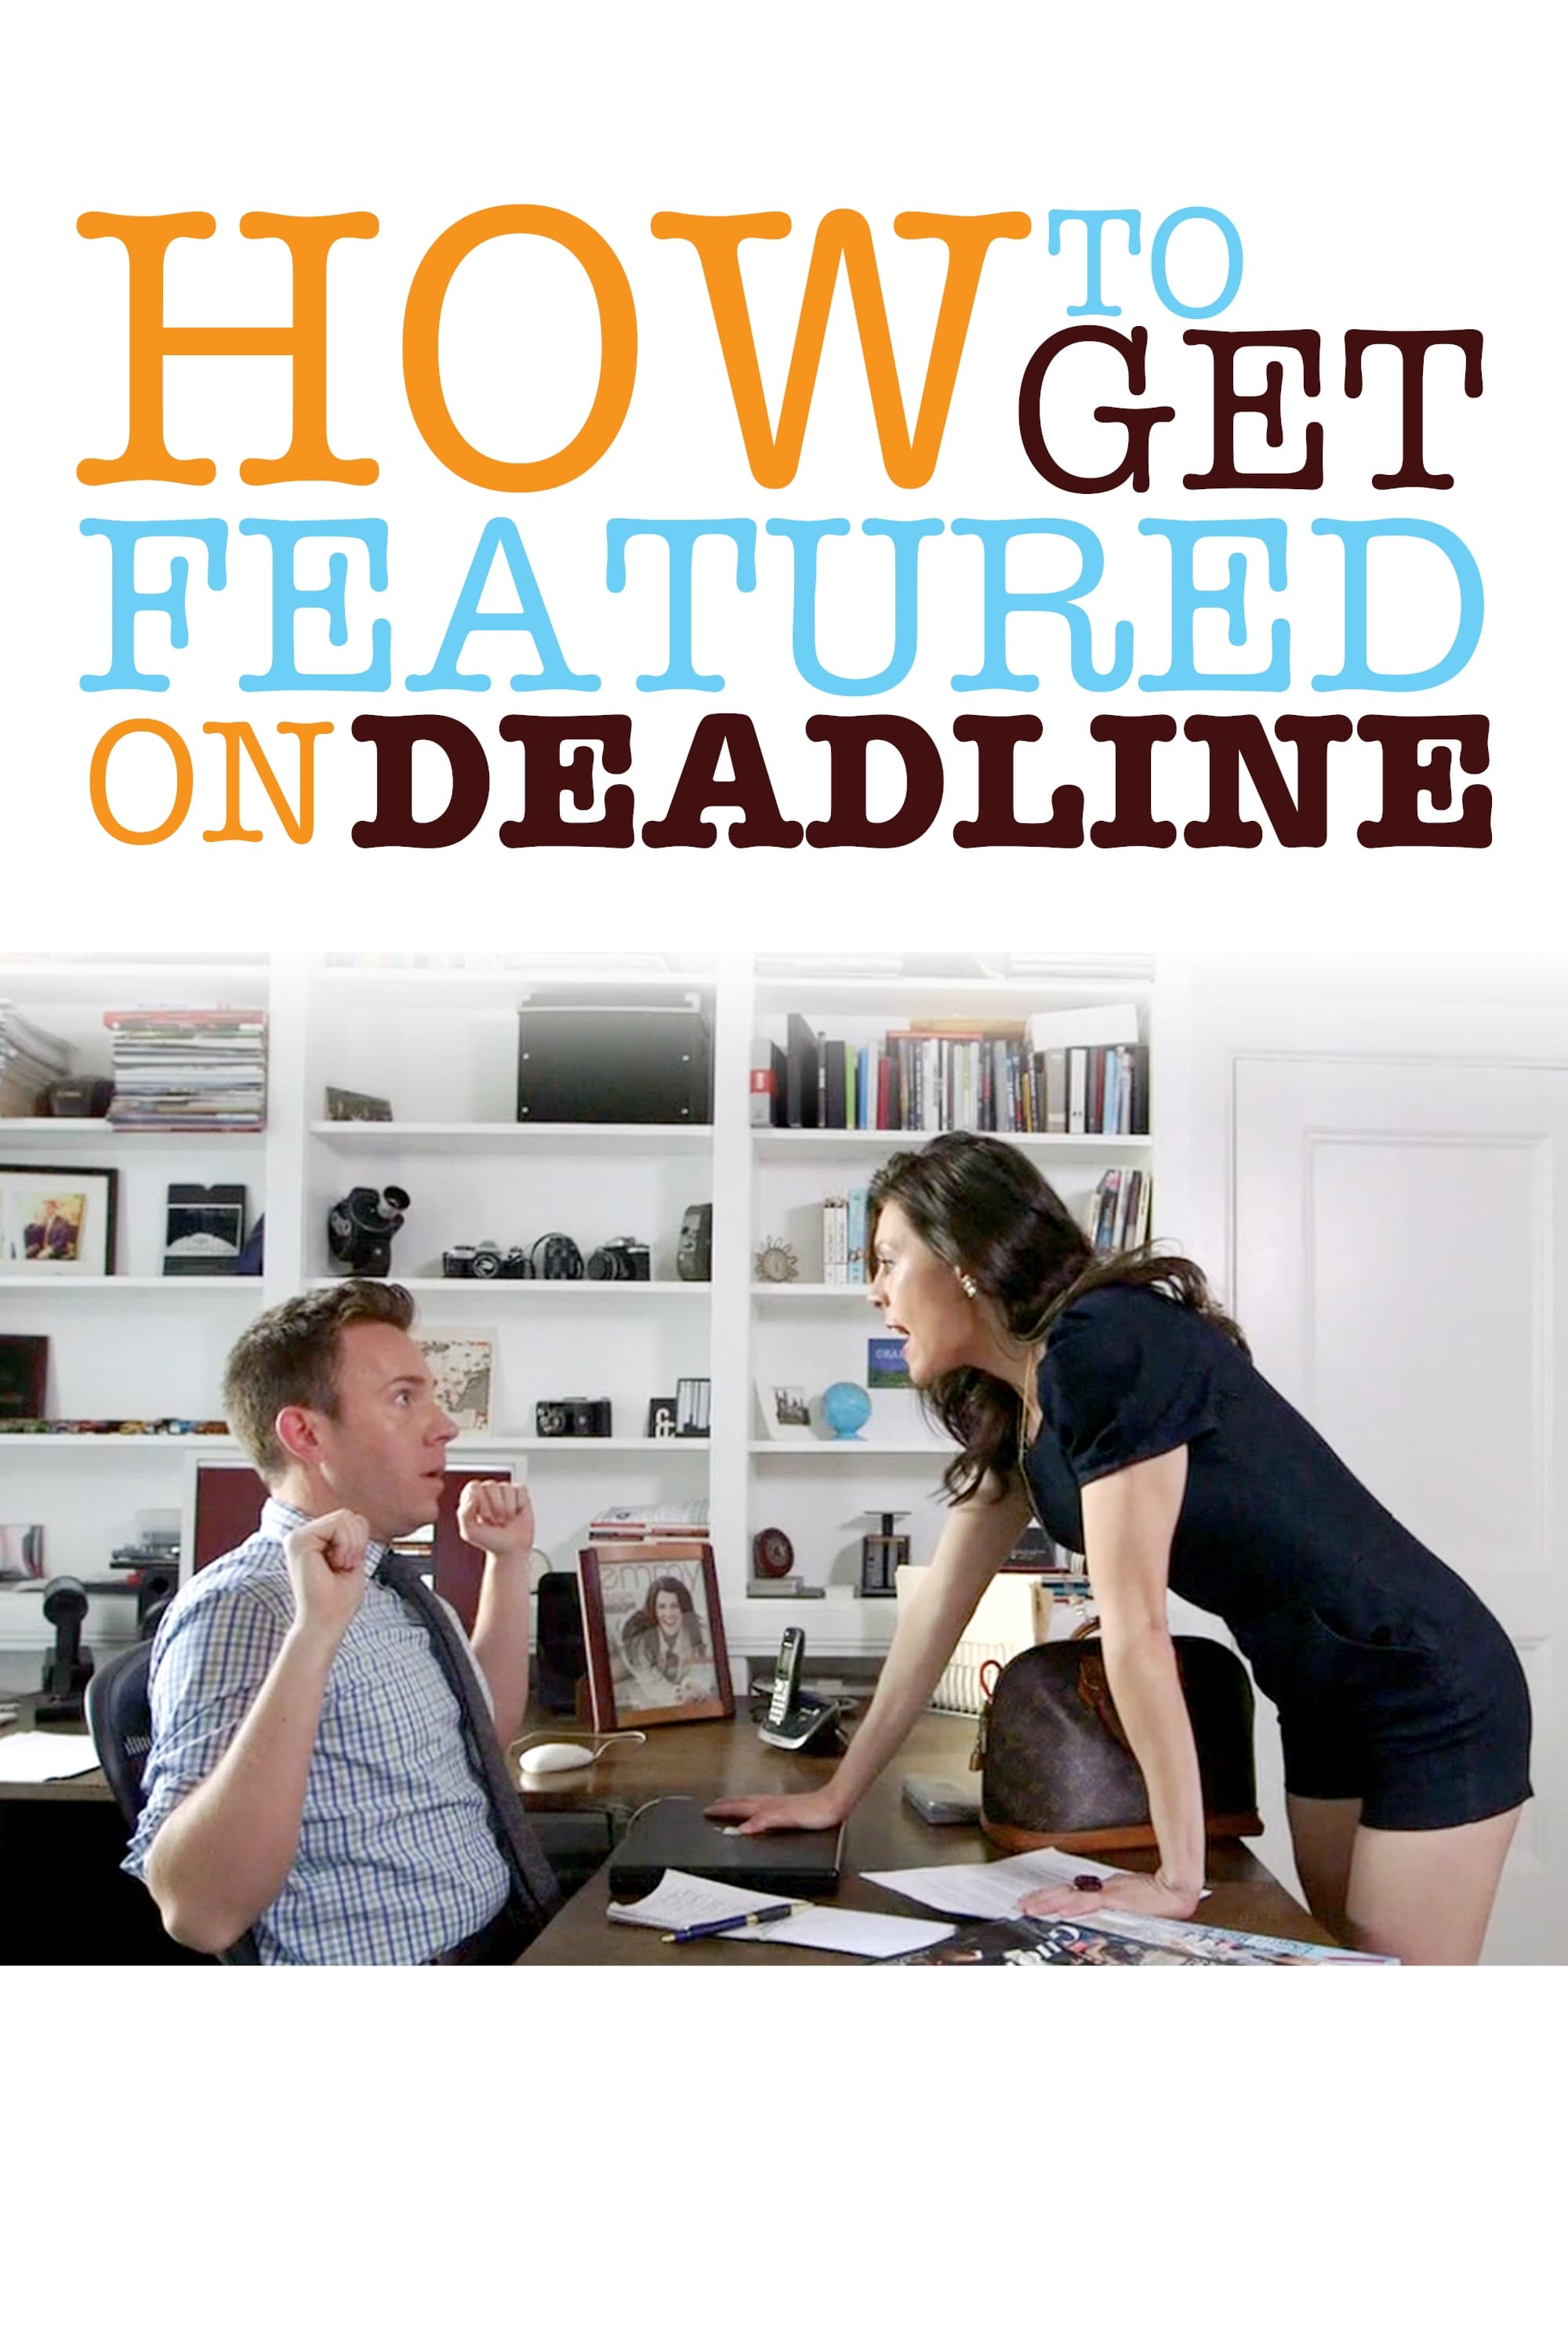 How To Get Featured On Deadline (2014)